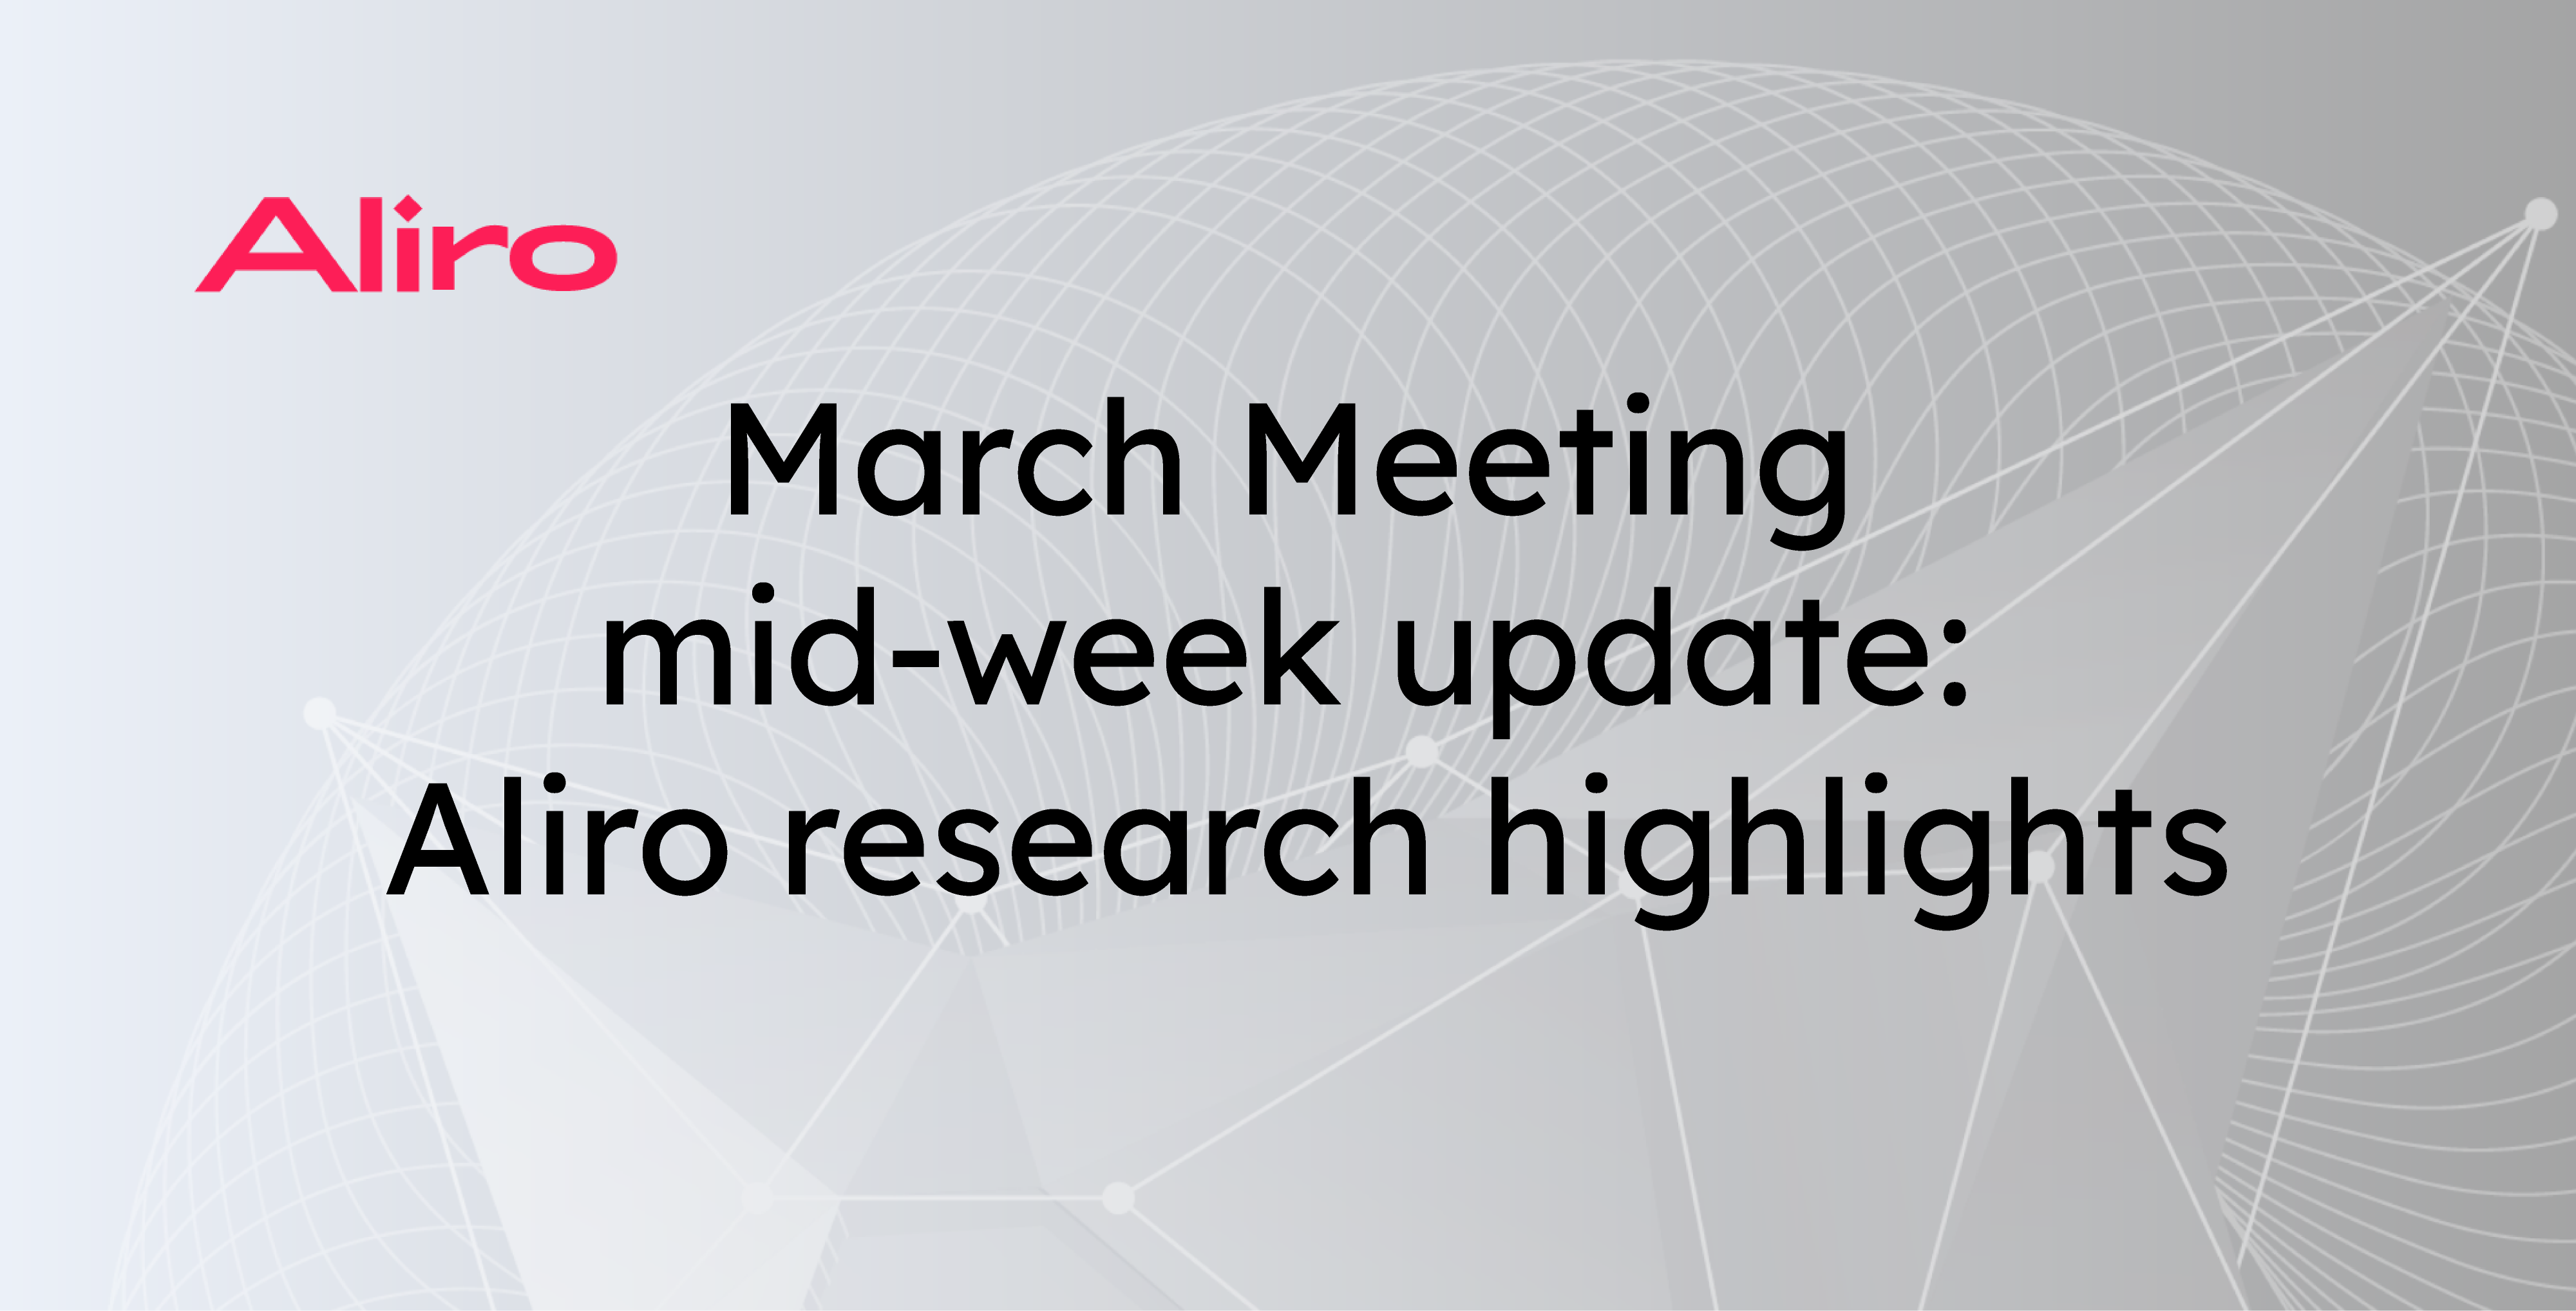 March Meeting mid-week update: Aliro research highlights